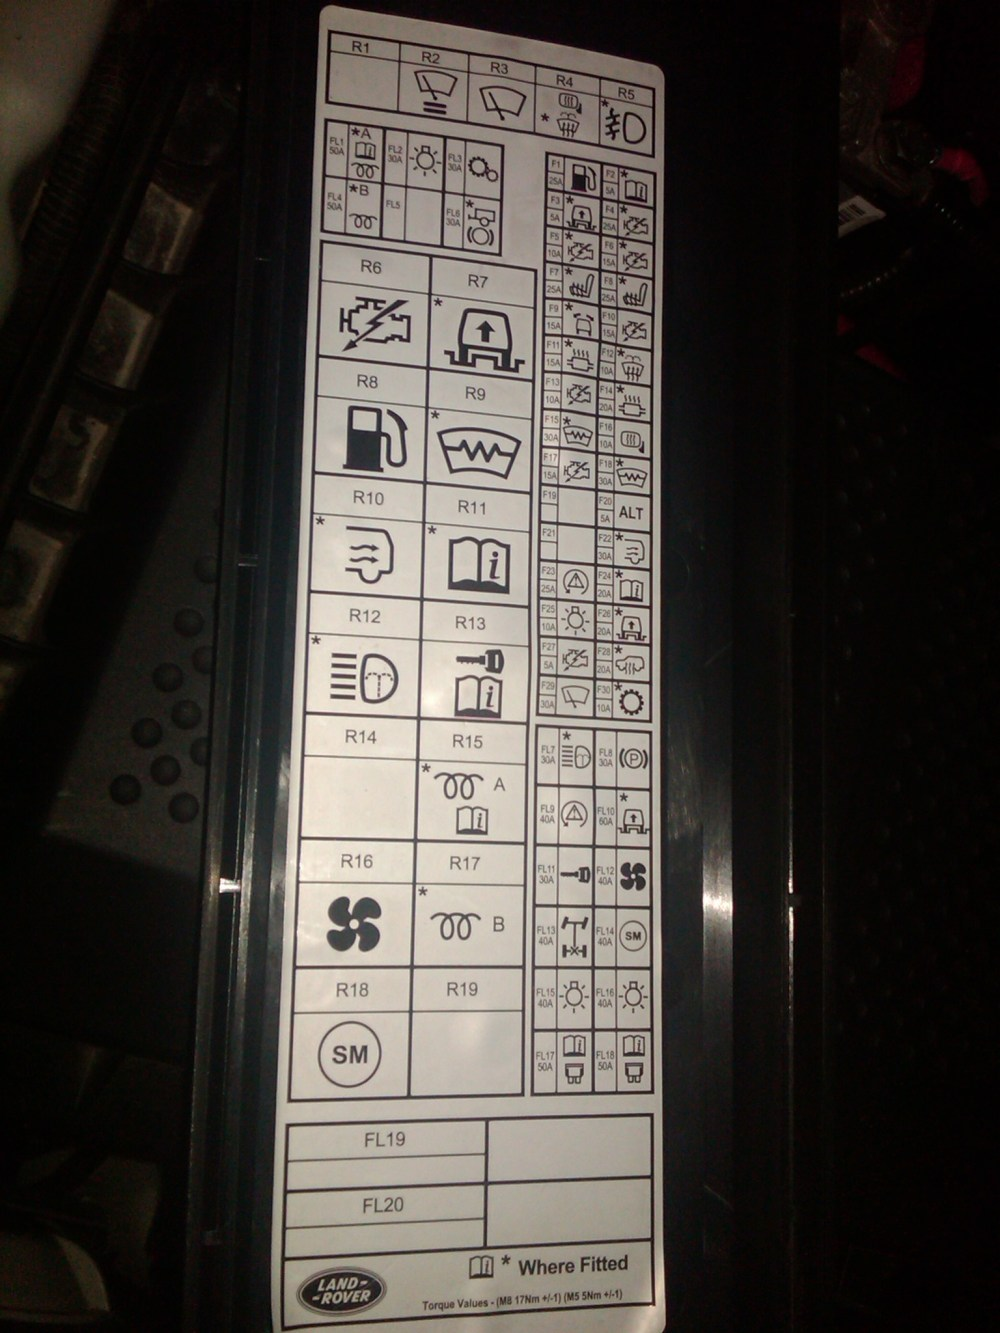 medium resolution of lr3 fuse box wiring diagram auto 2005 lr3 fuse box lr3 fuse box source land rover